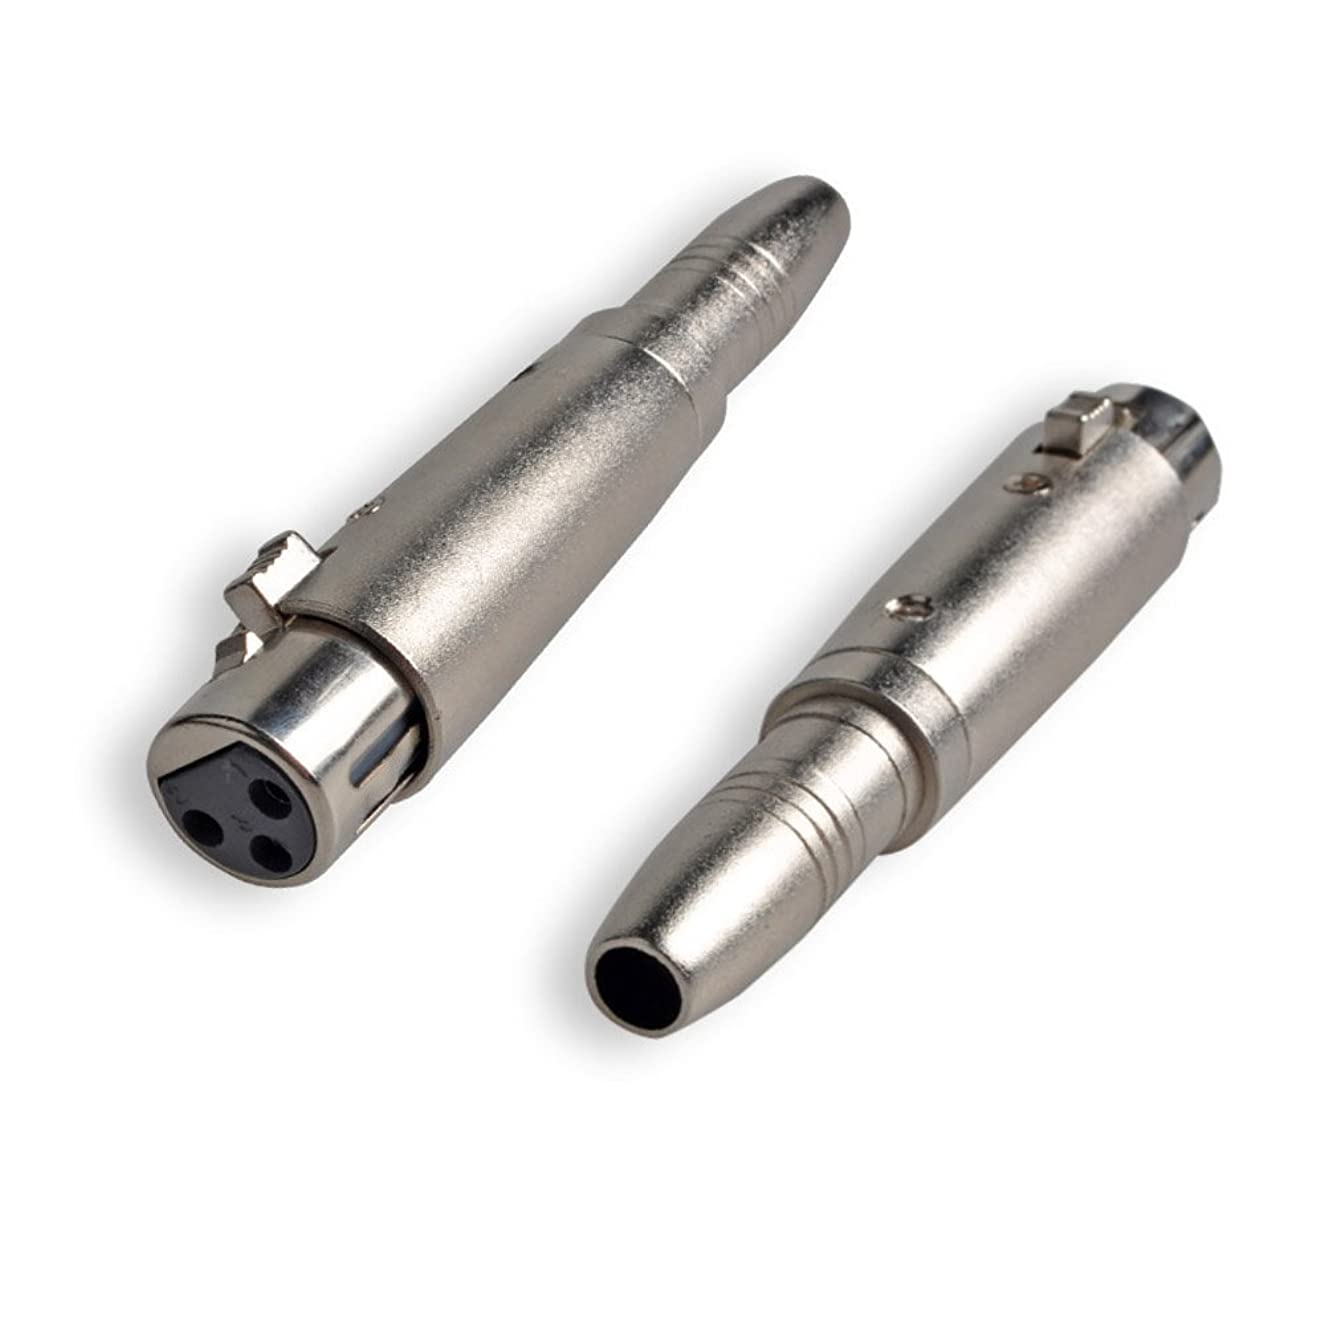 XLR to 6.35mm Adapter, Conwork 2-Pack Mono 1/4